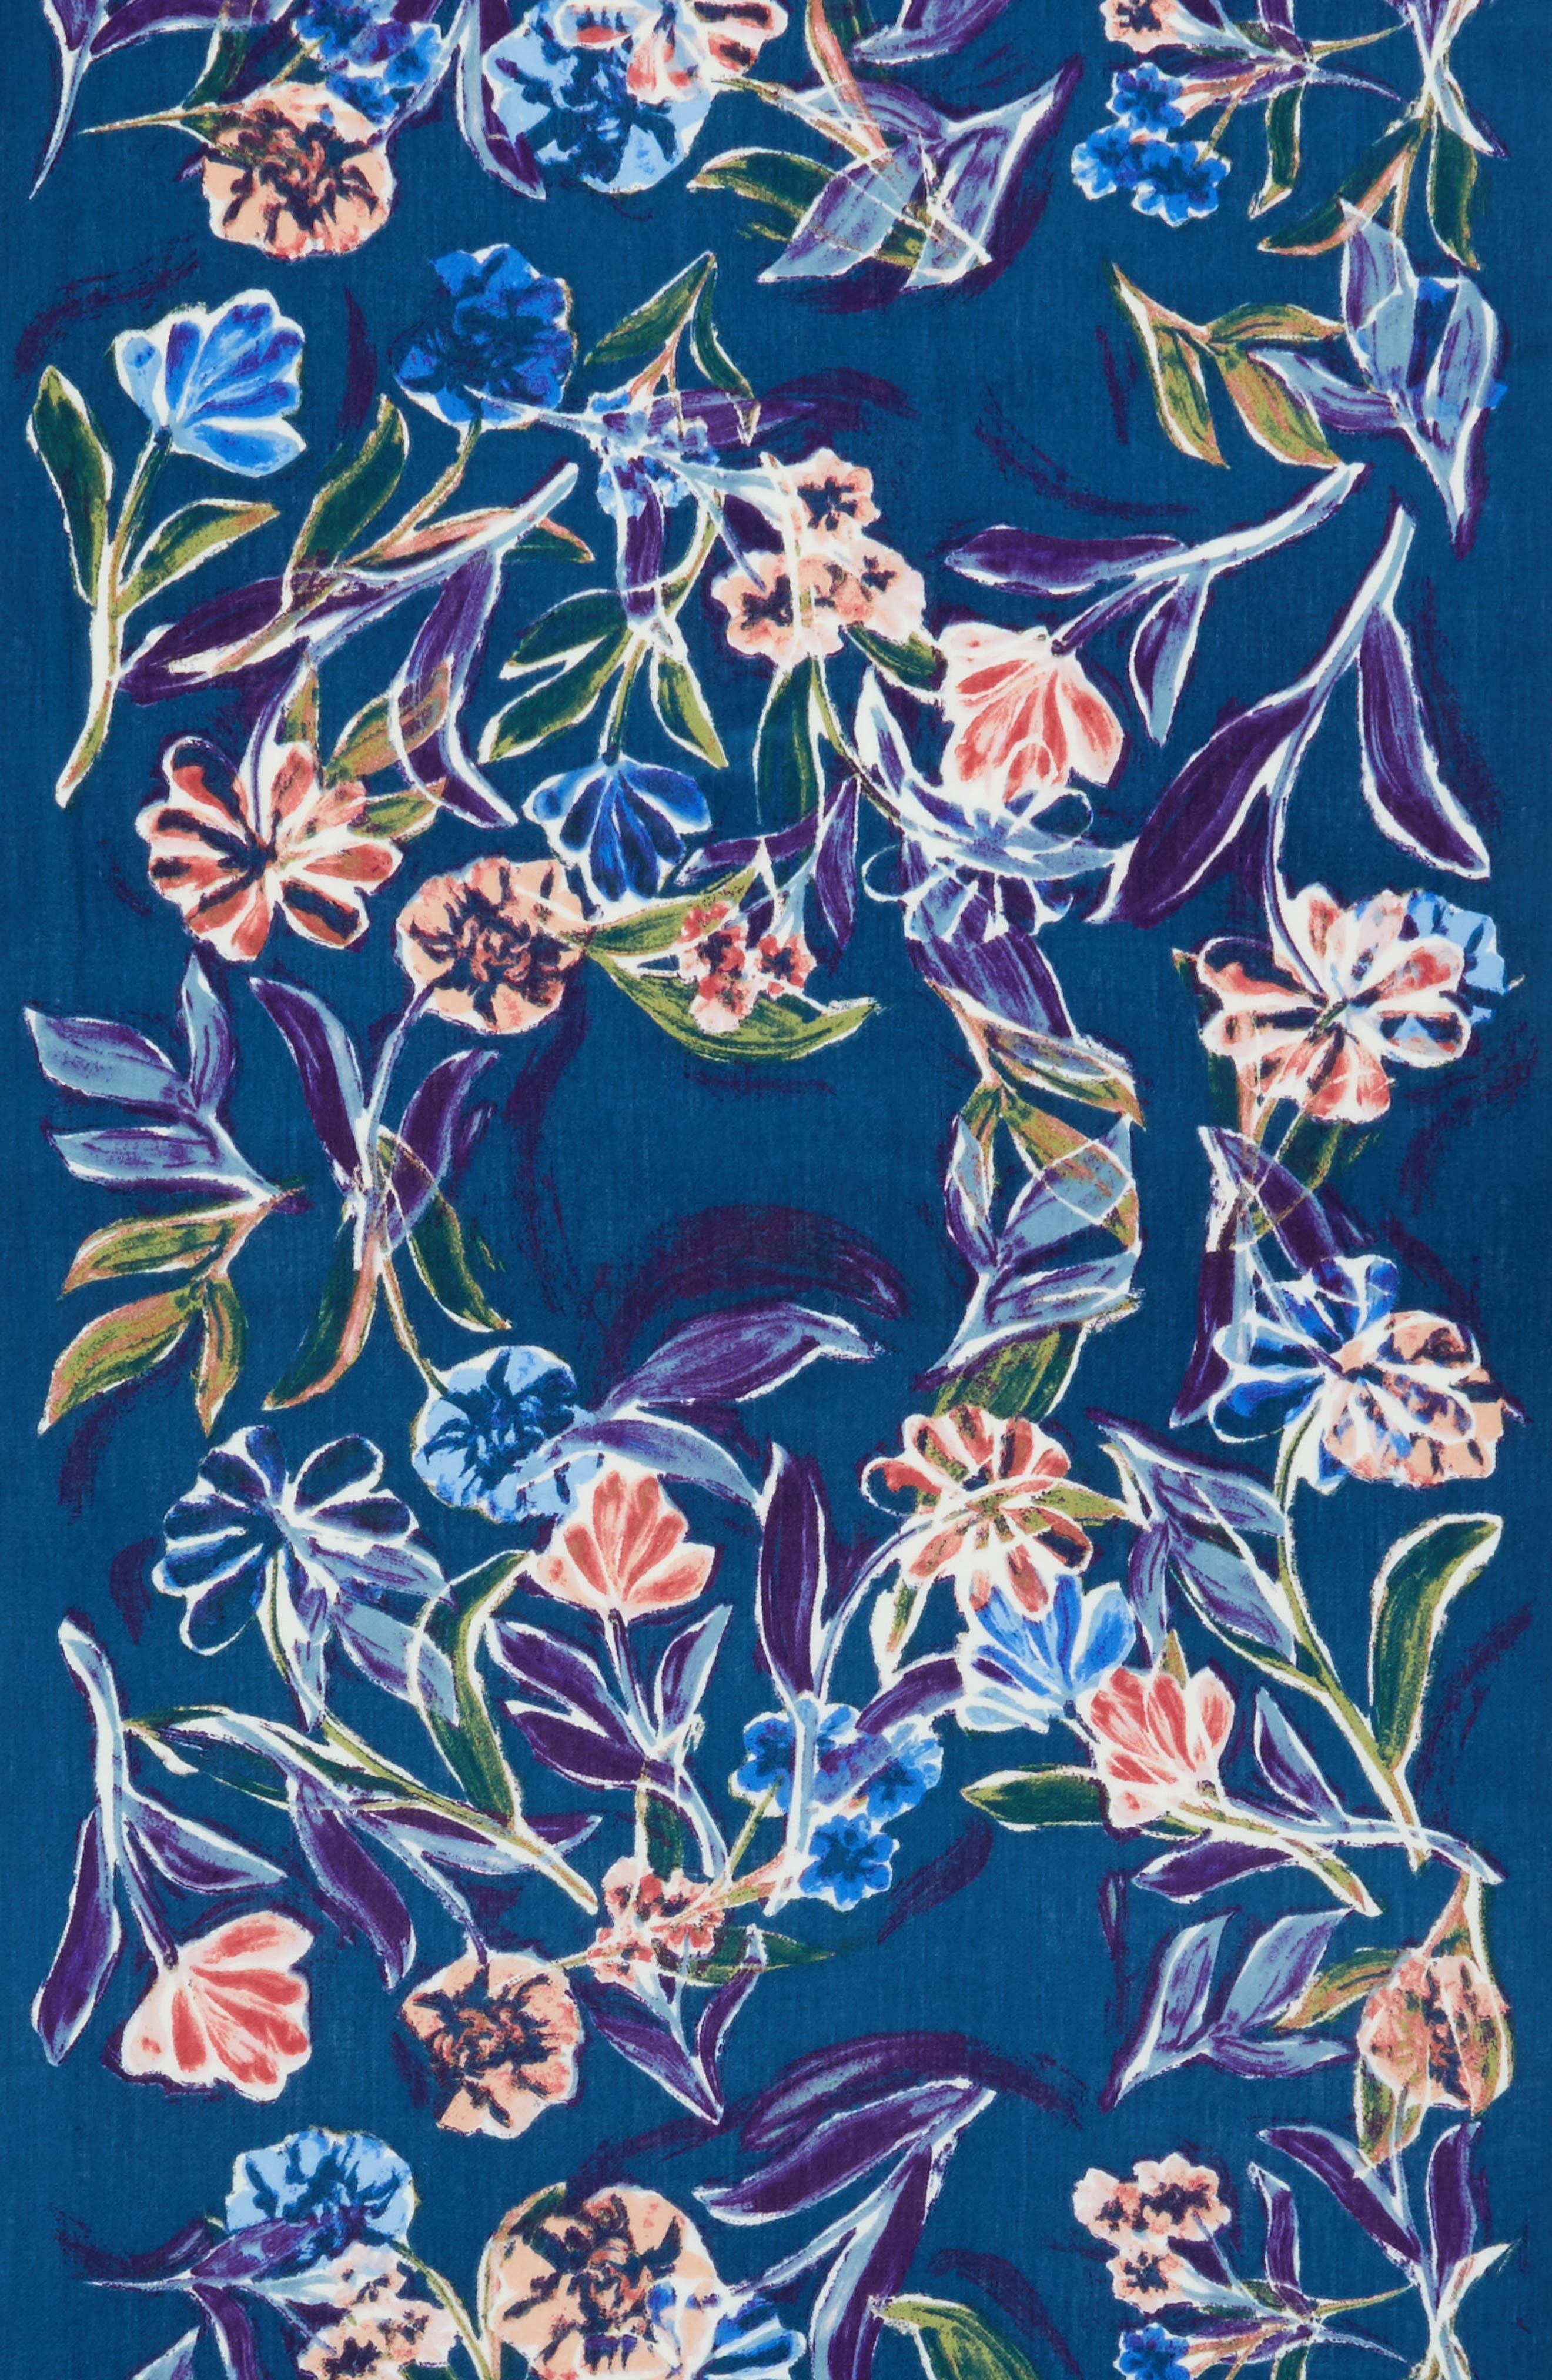 Pressed Flowers Tissue Weight Wool & Cashmere Scarf,                             Alternate thumbnail 11, color,